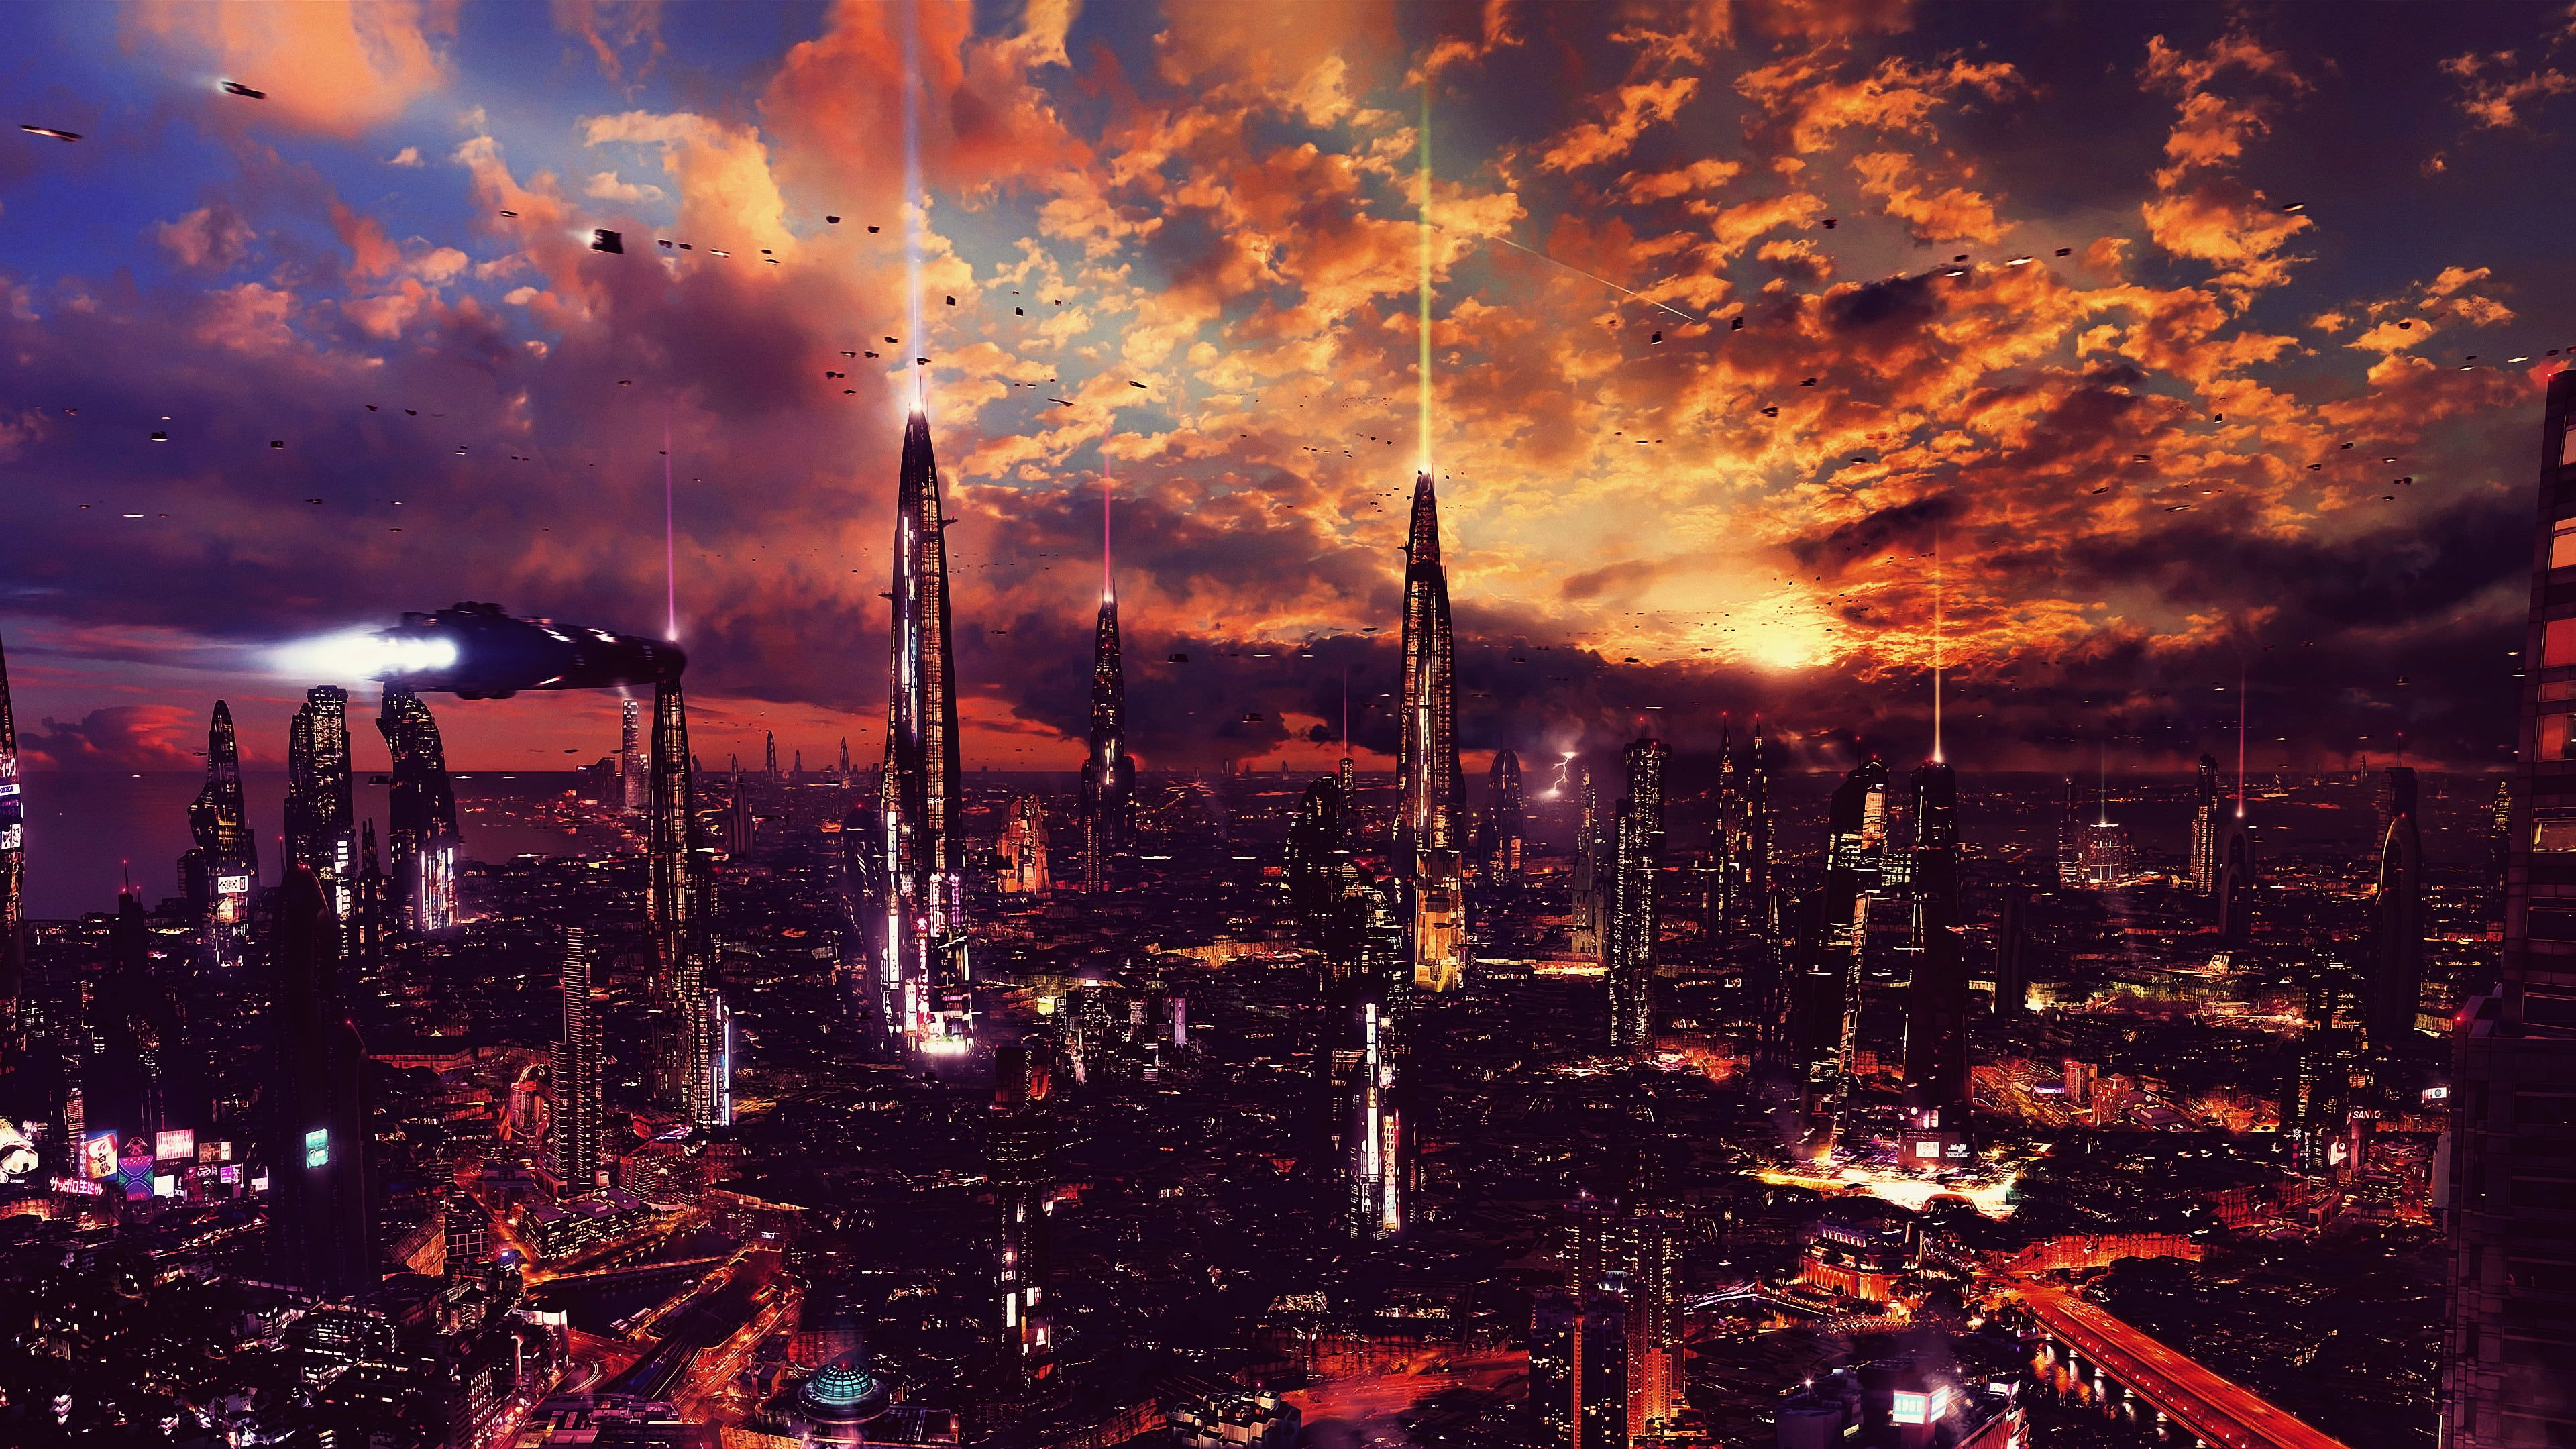 Cityscape View Of City During Nighttime Night Artwork Futuristic City Science Fiction Digital Art Concept Art Cityscape Futuristic City Cityscape Wallpaper